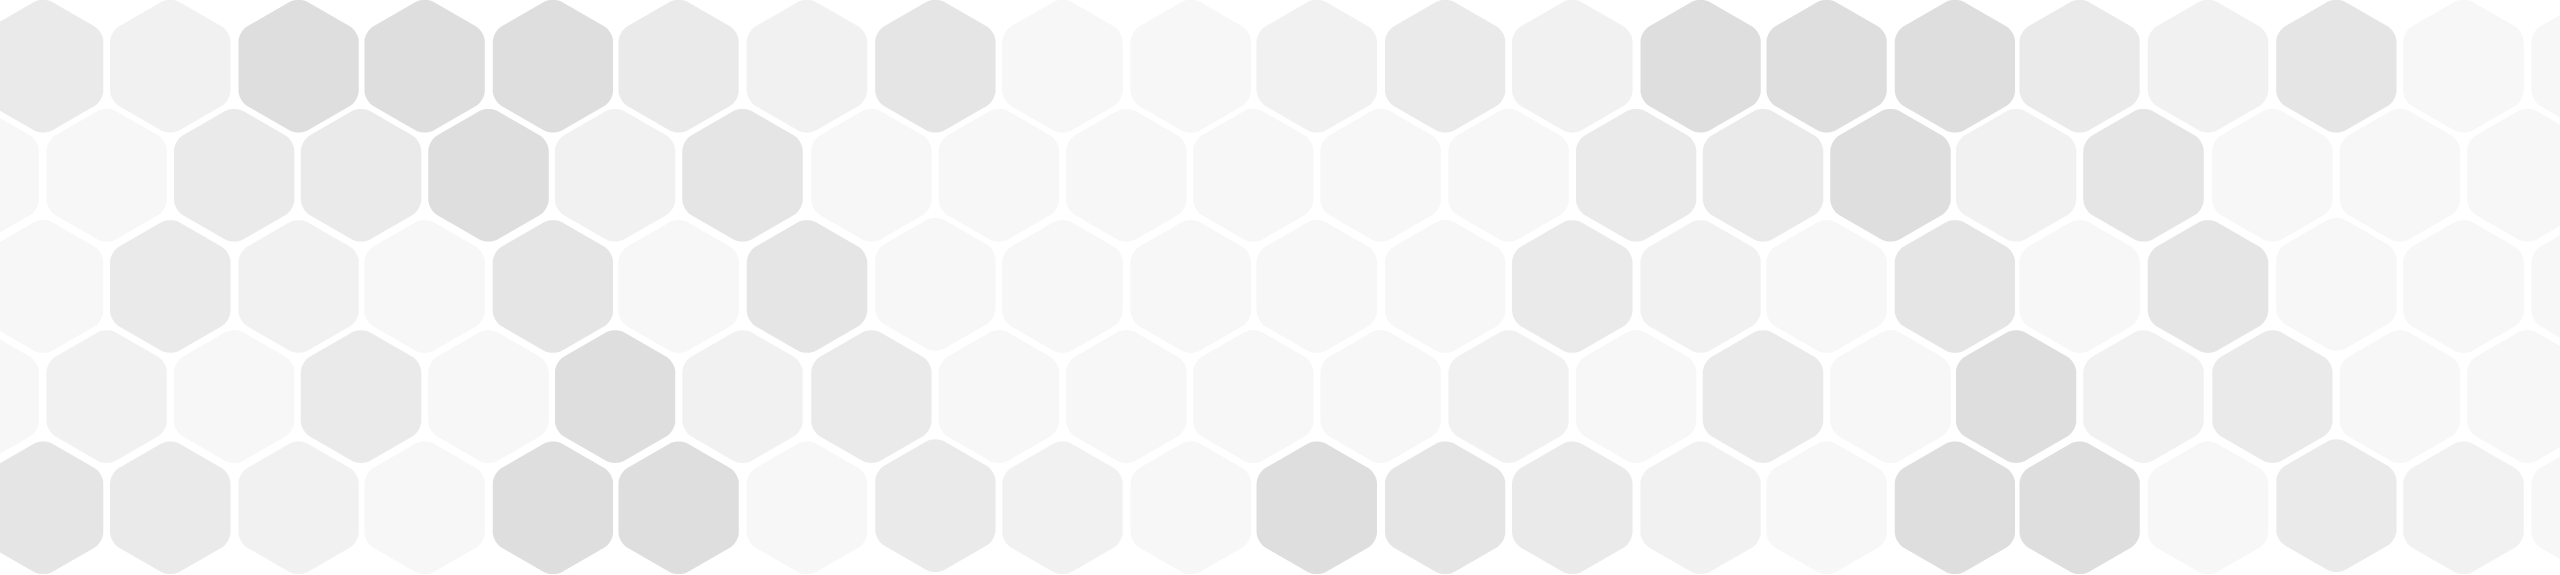 e-course-hexagon-pattern.original